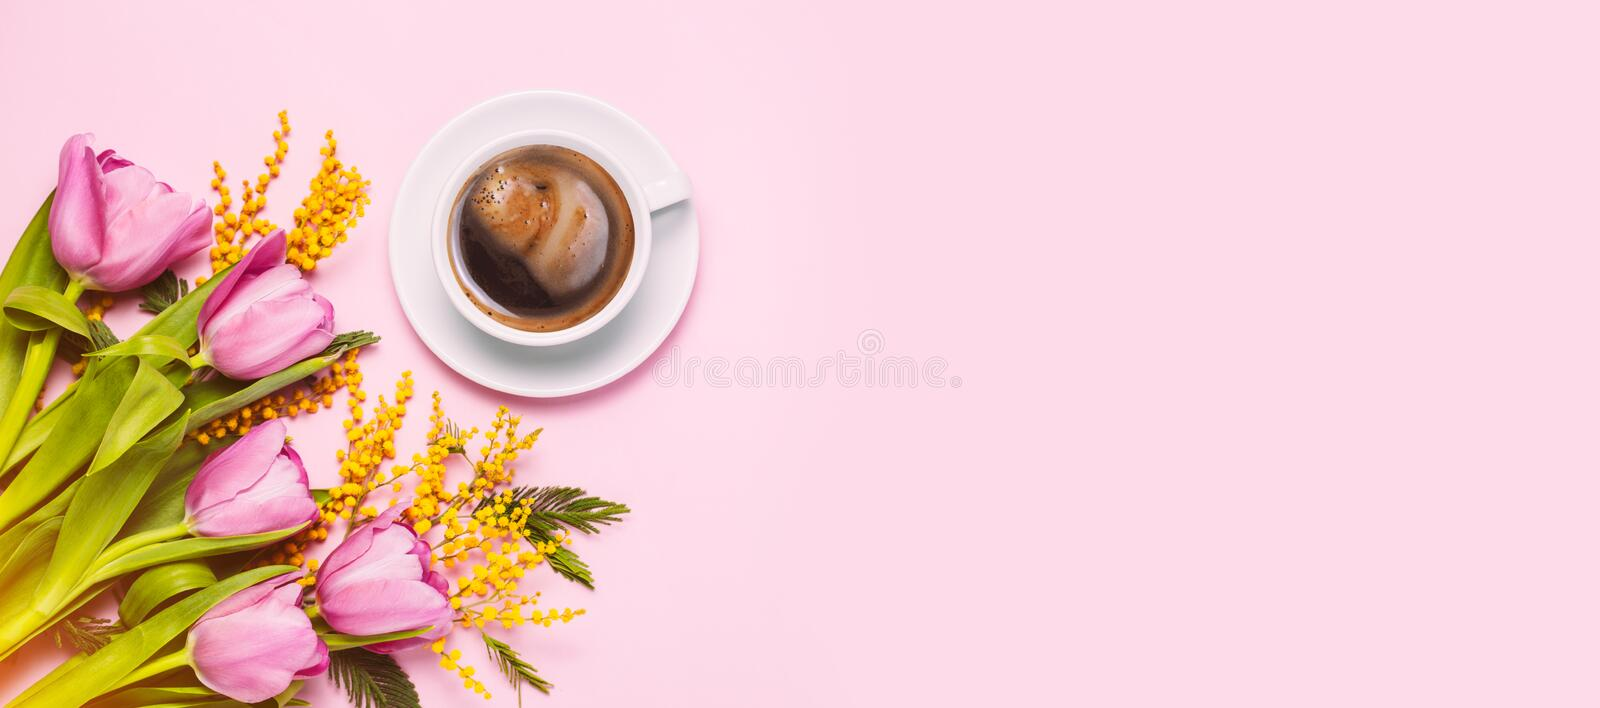 Pink tulips and mimosa flowers with cup of coffee on pink background. Pink tulips and mimosa flowers with cup of coffee on pink trendy background. Spring stock photo